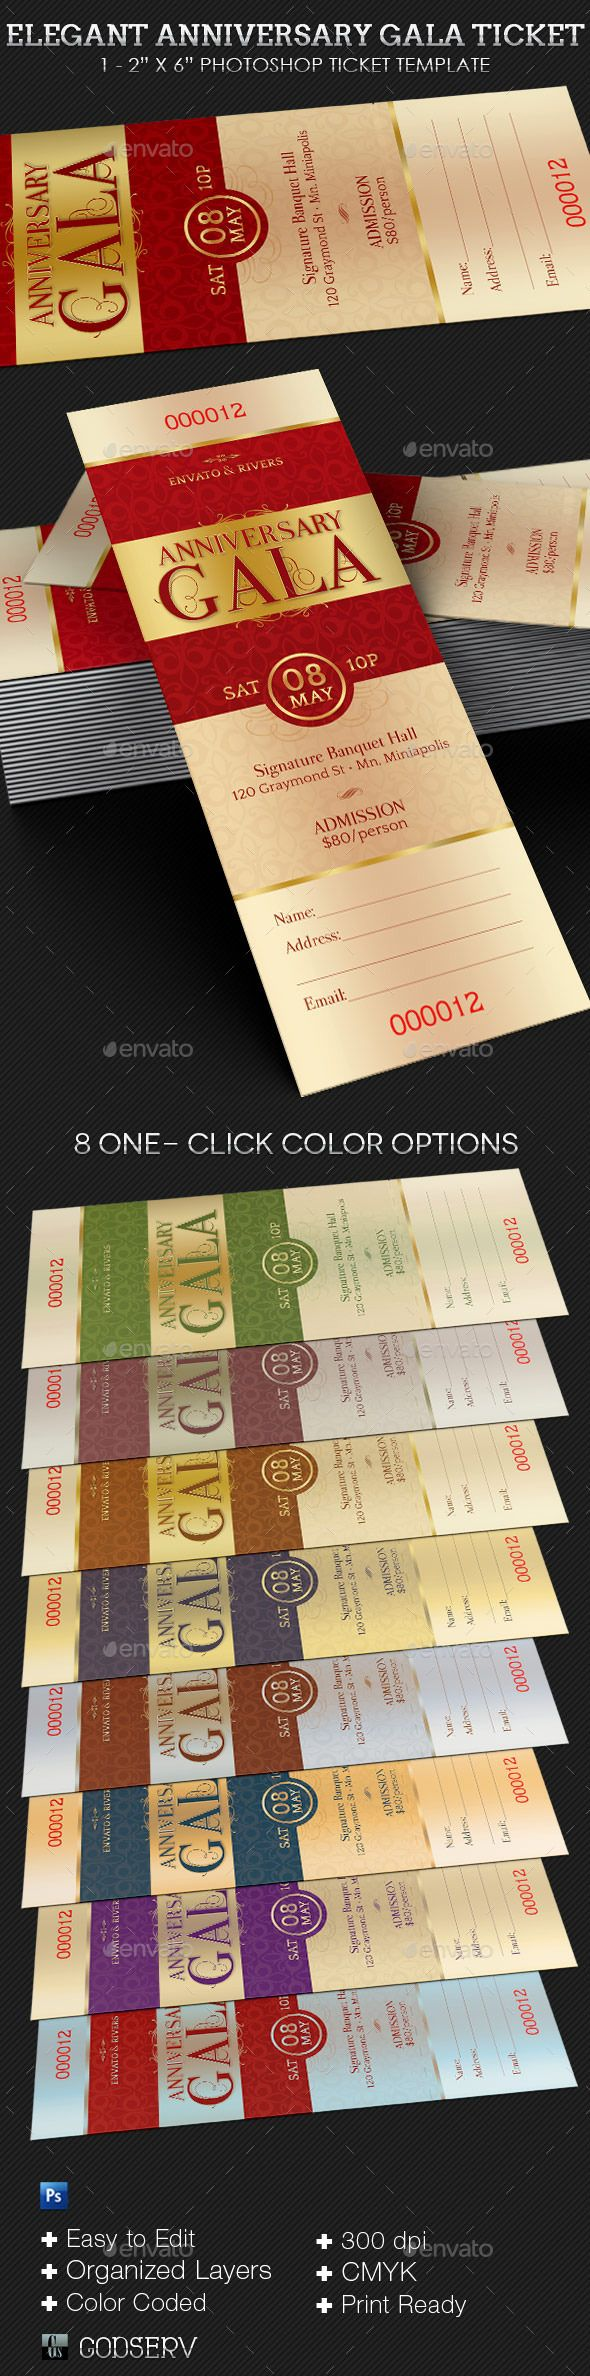 sample invitation letter to attend an event%0A Elegant Anniversary Gala Ticket Template